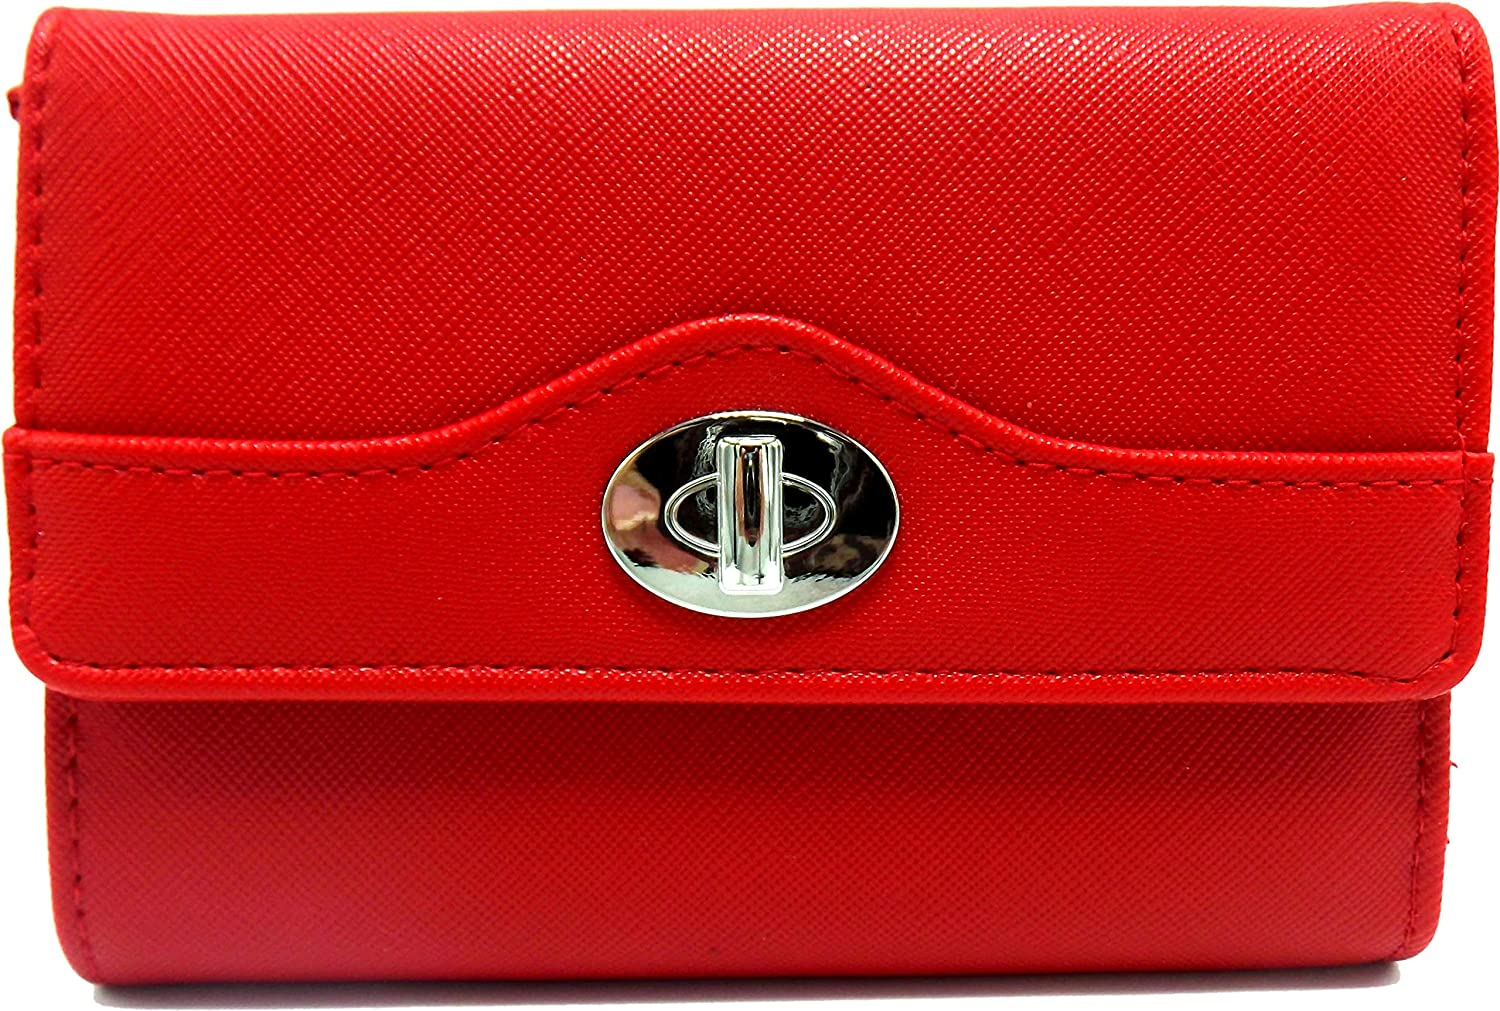 Indexer Women's Faux Leather Mundi Wallet Ladies RFID Protection One Size i875x